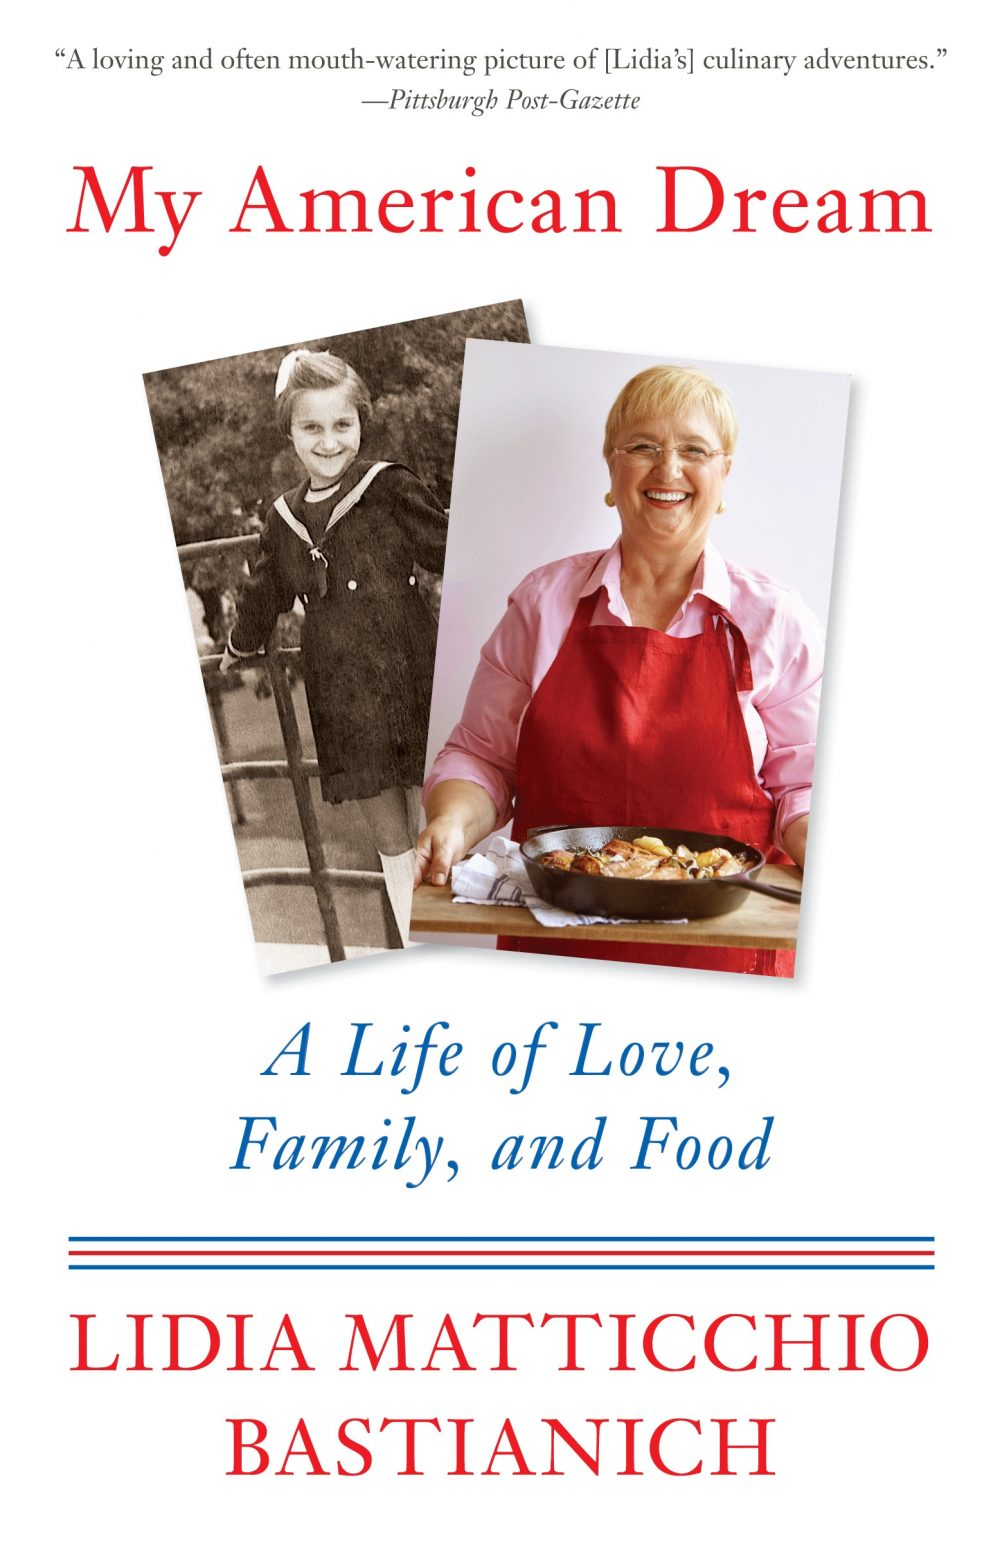 My American Dream: A Life of Love, Family and Food